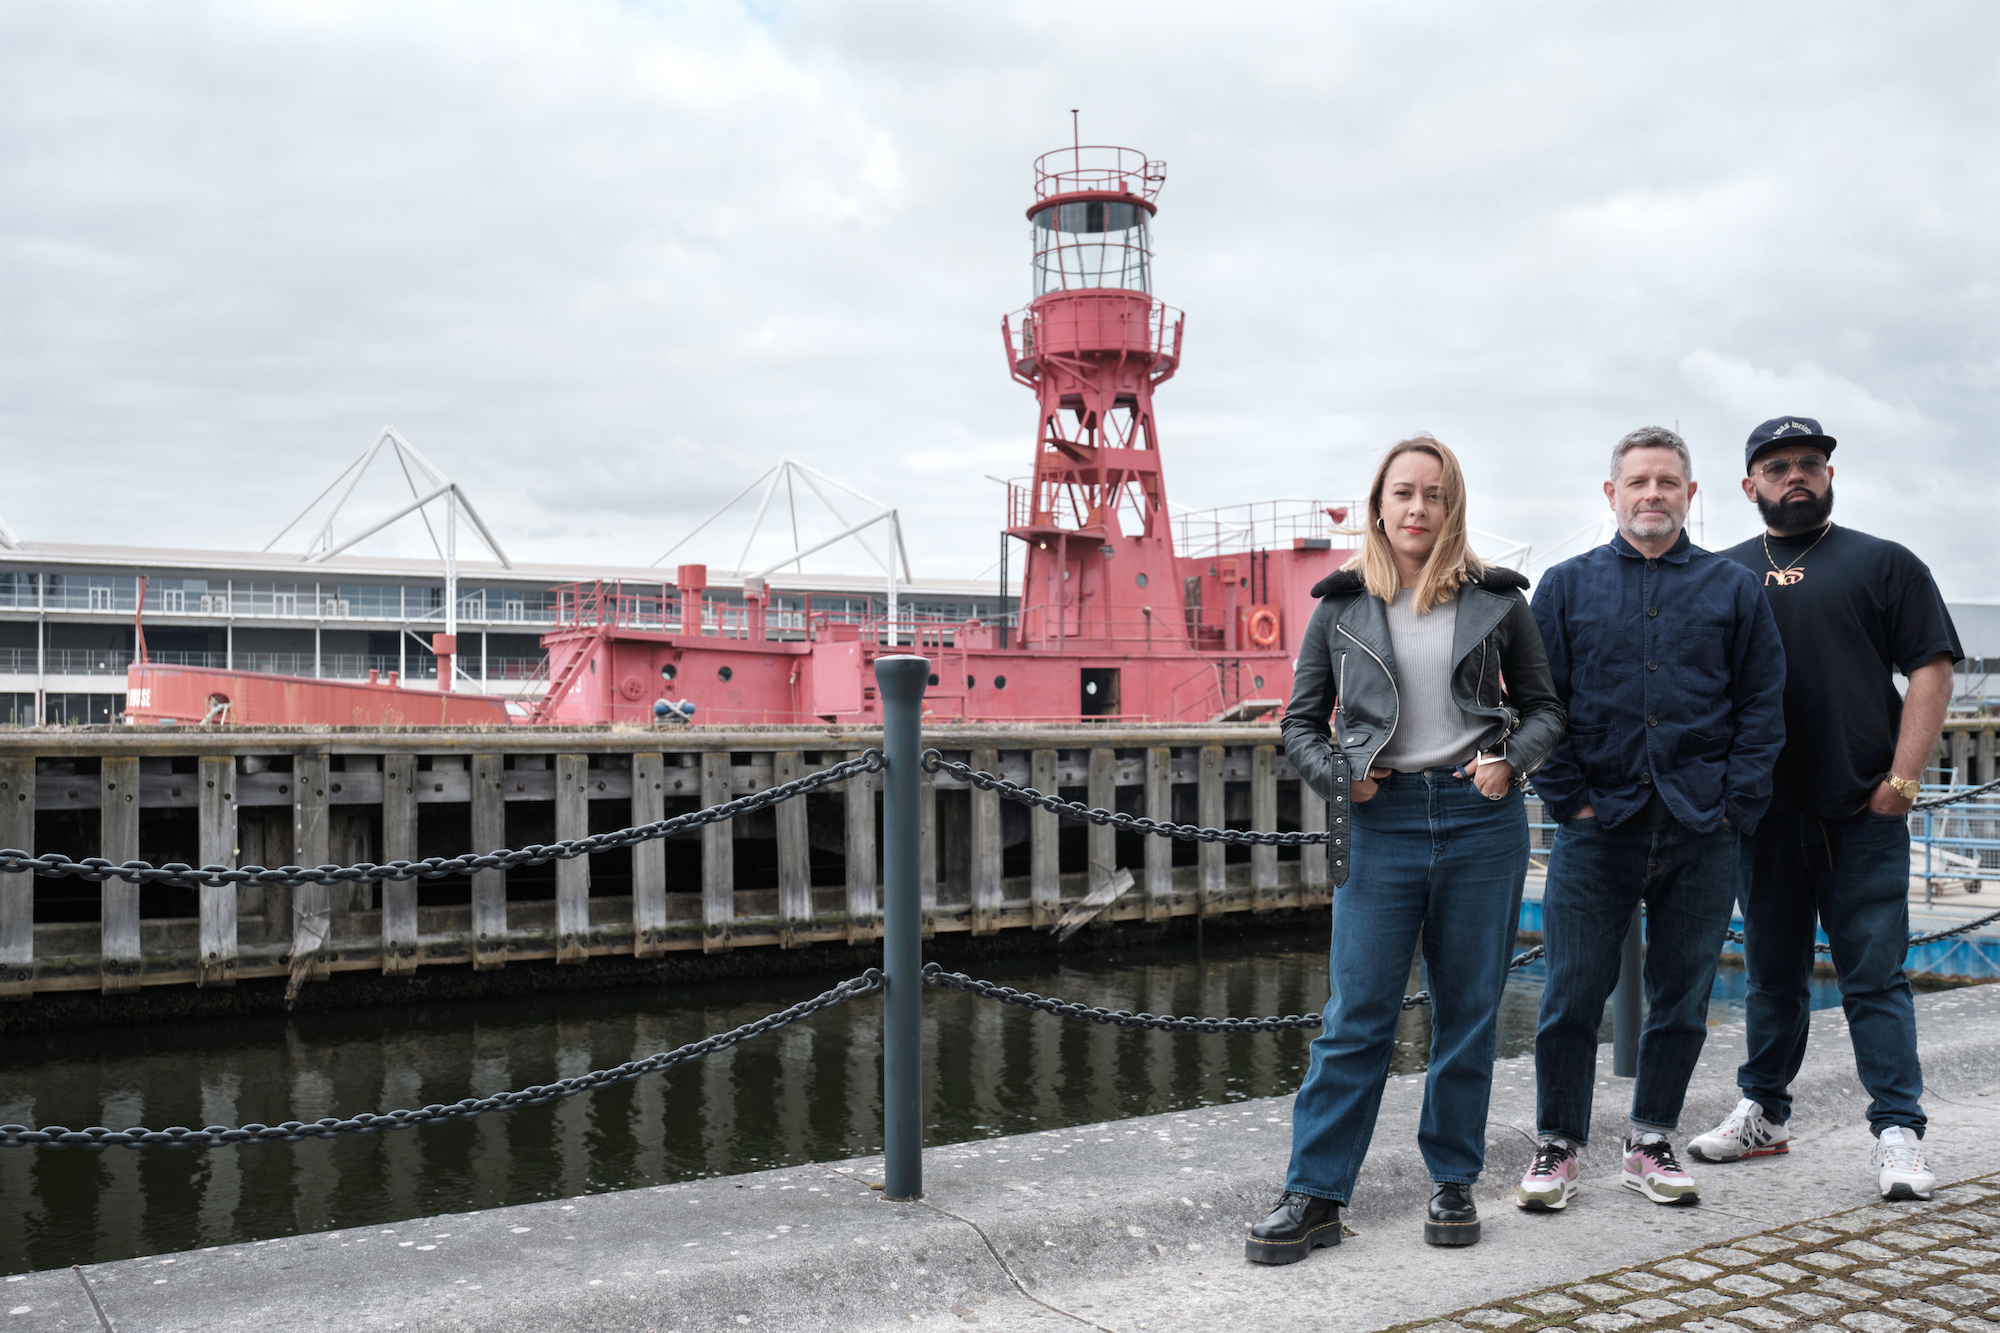 The ARRIVAL team outside Lightship 93, a historic lighthouse vessel in the Royal Docks